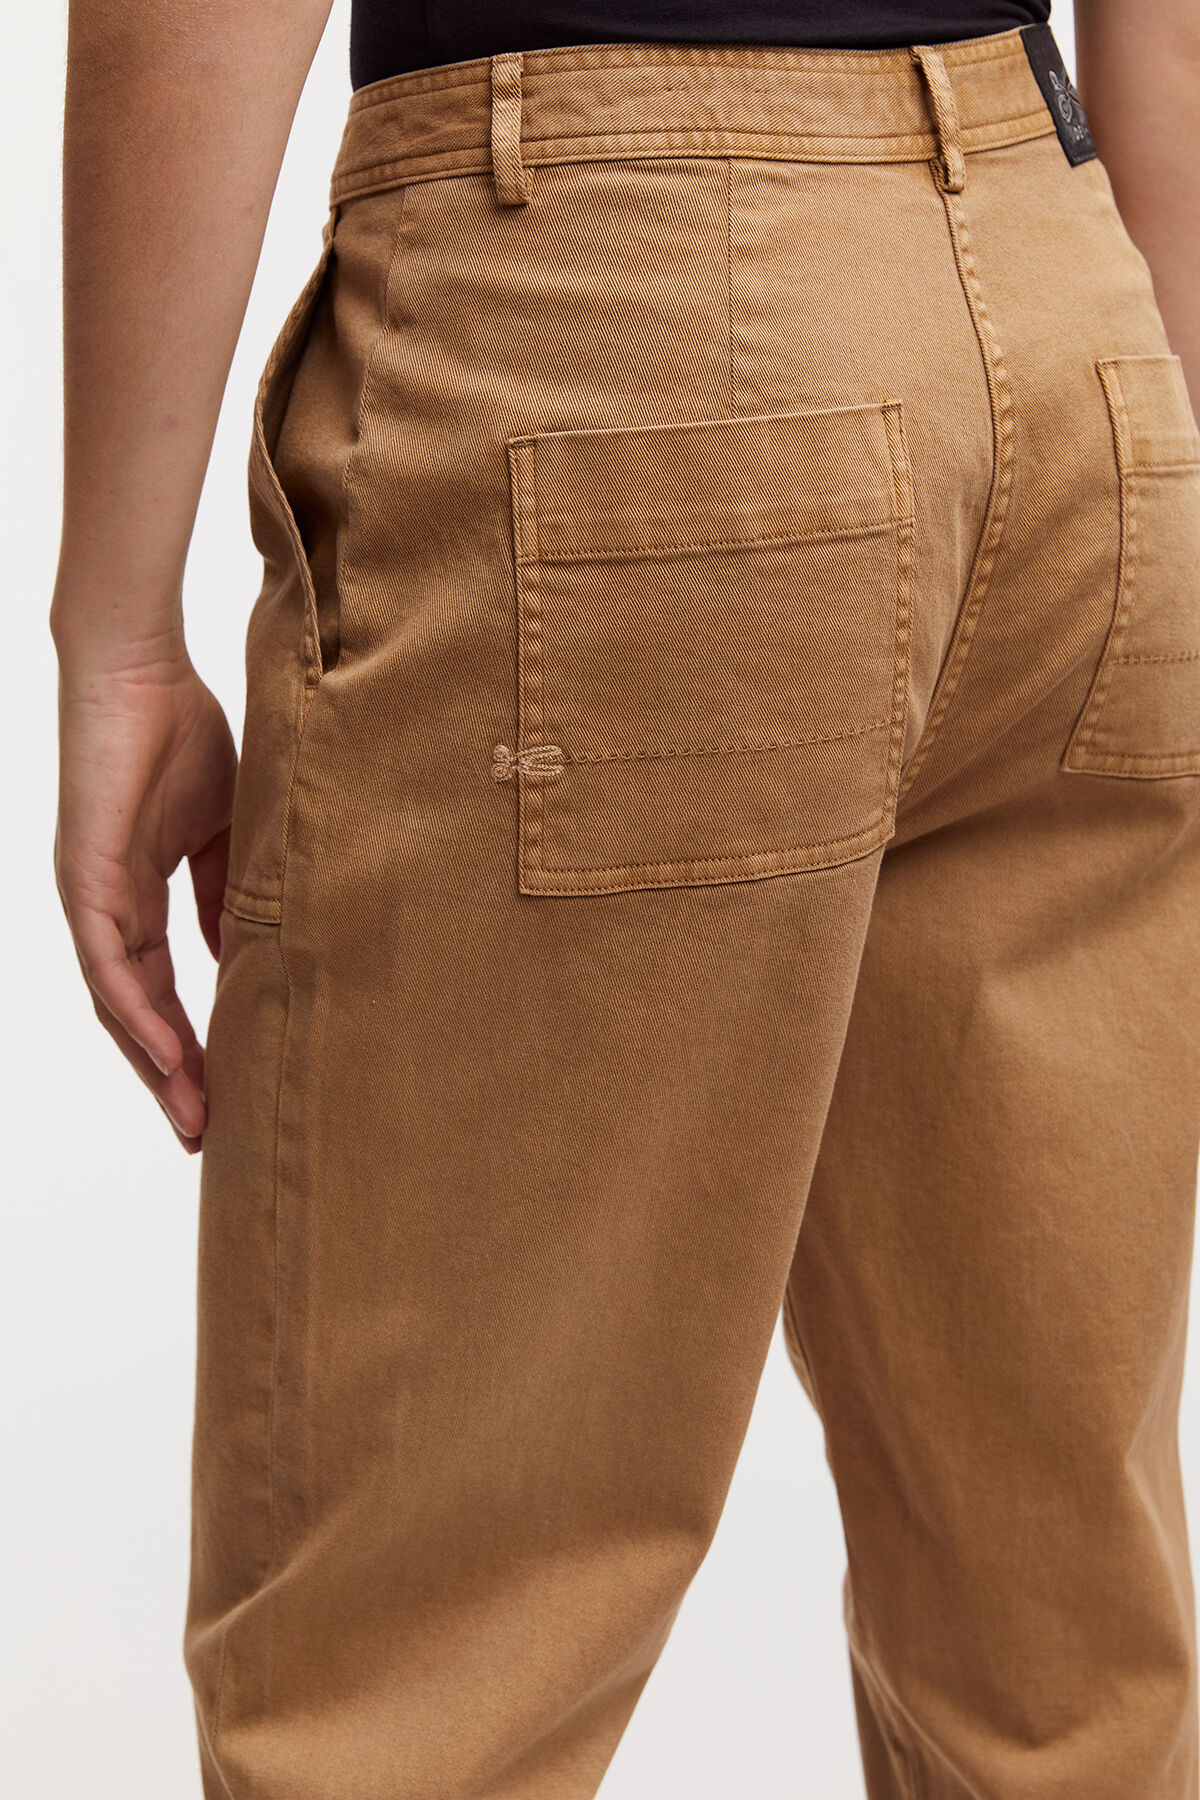 JODIE PANT Cotton & Tencel Fabric Blend - High-Rise, Straight Fit